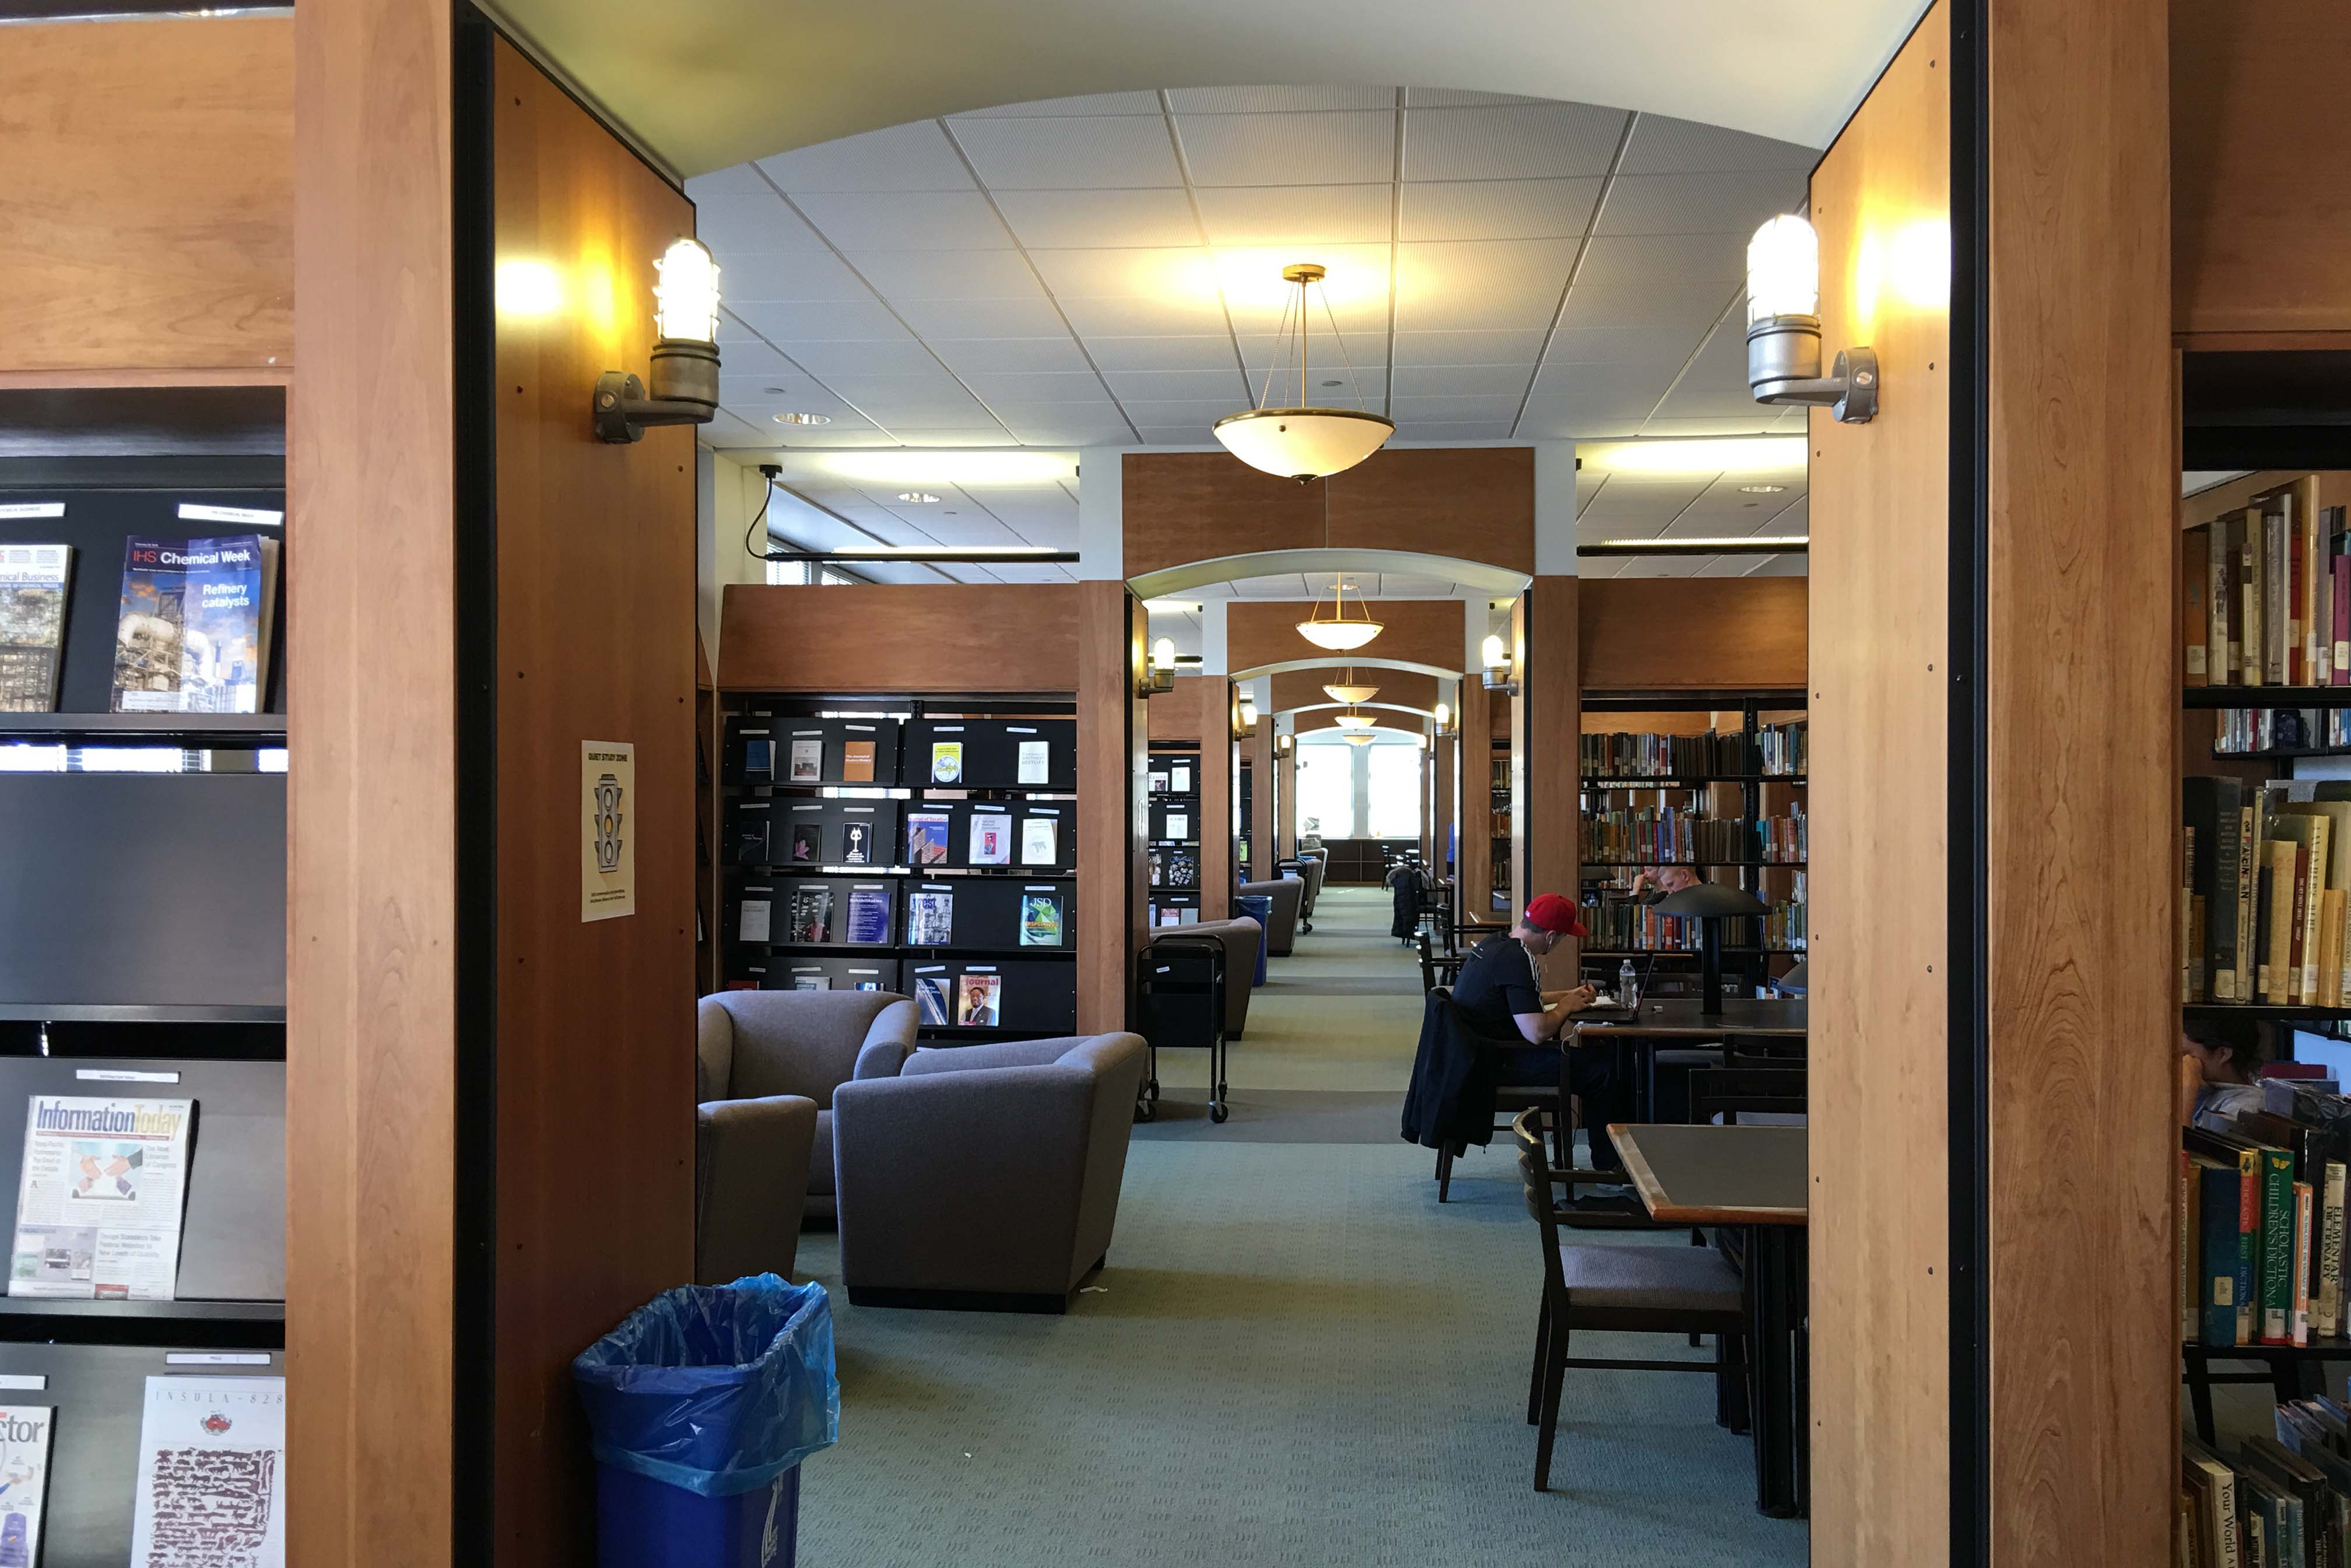 Rowan University Libraries Planning & Strategy